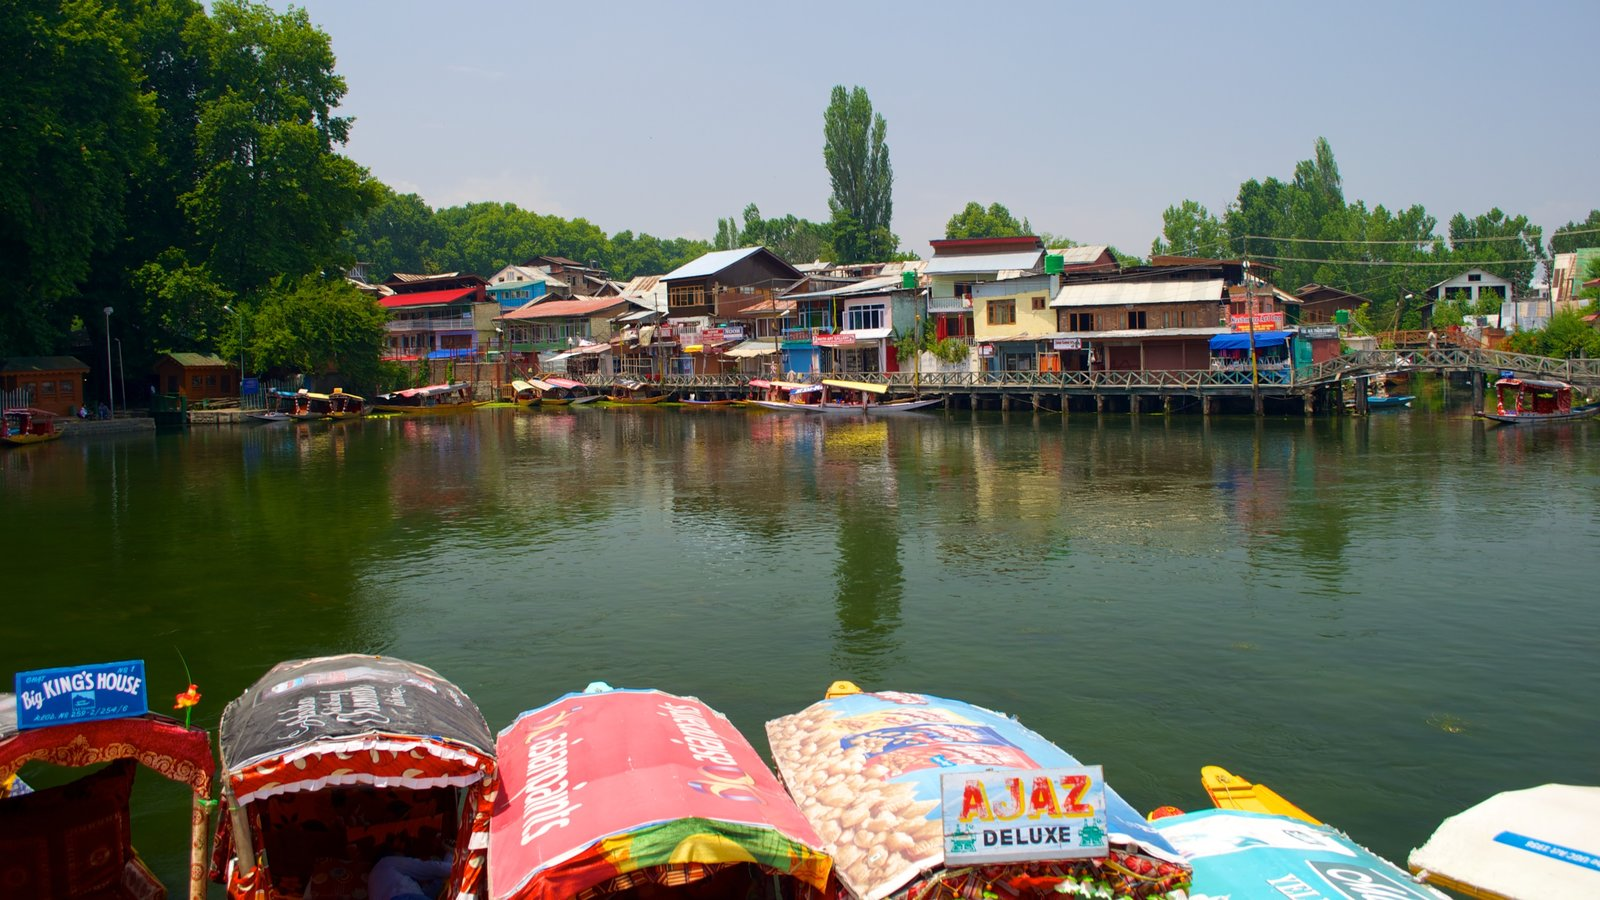 Srinagar which includes a lake or waterhole and a house